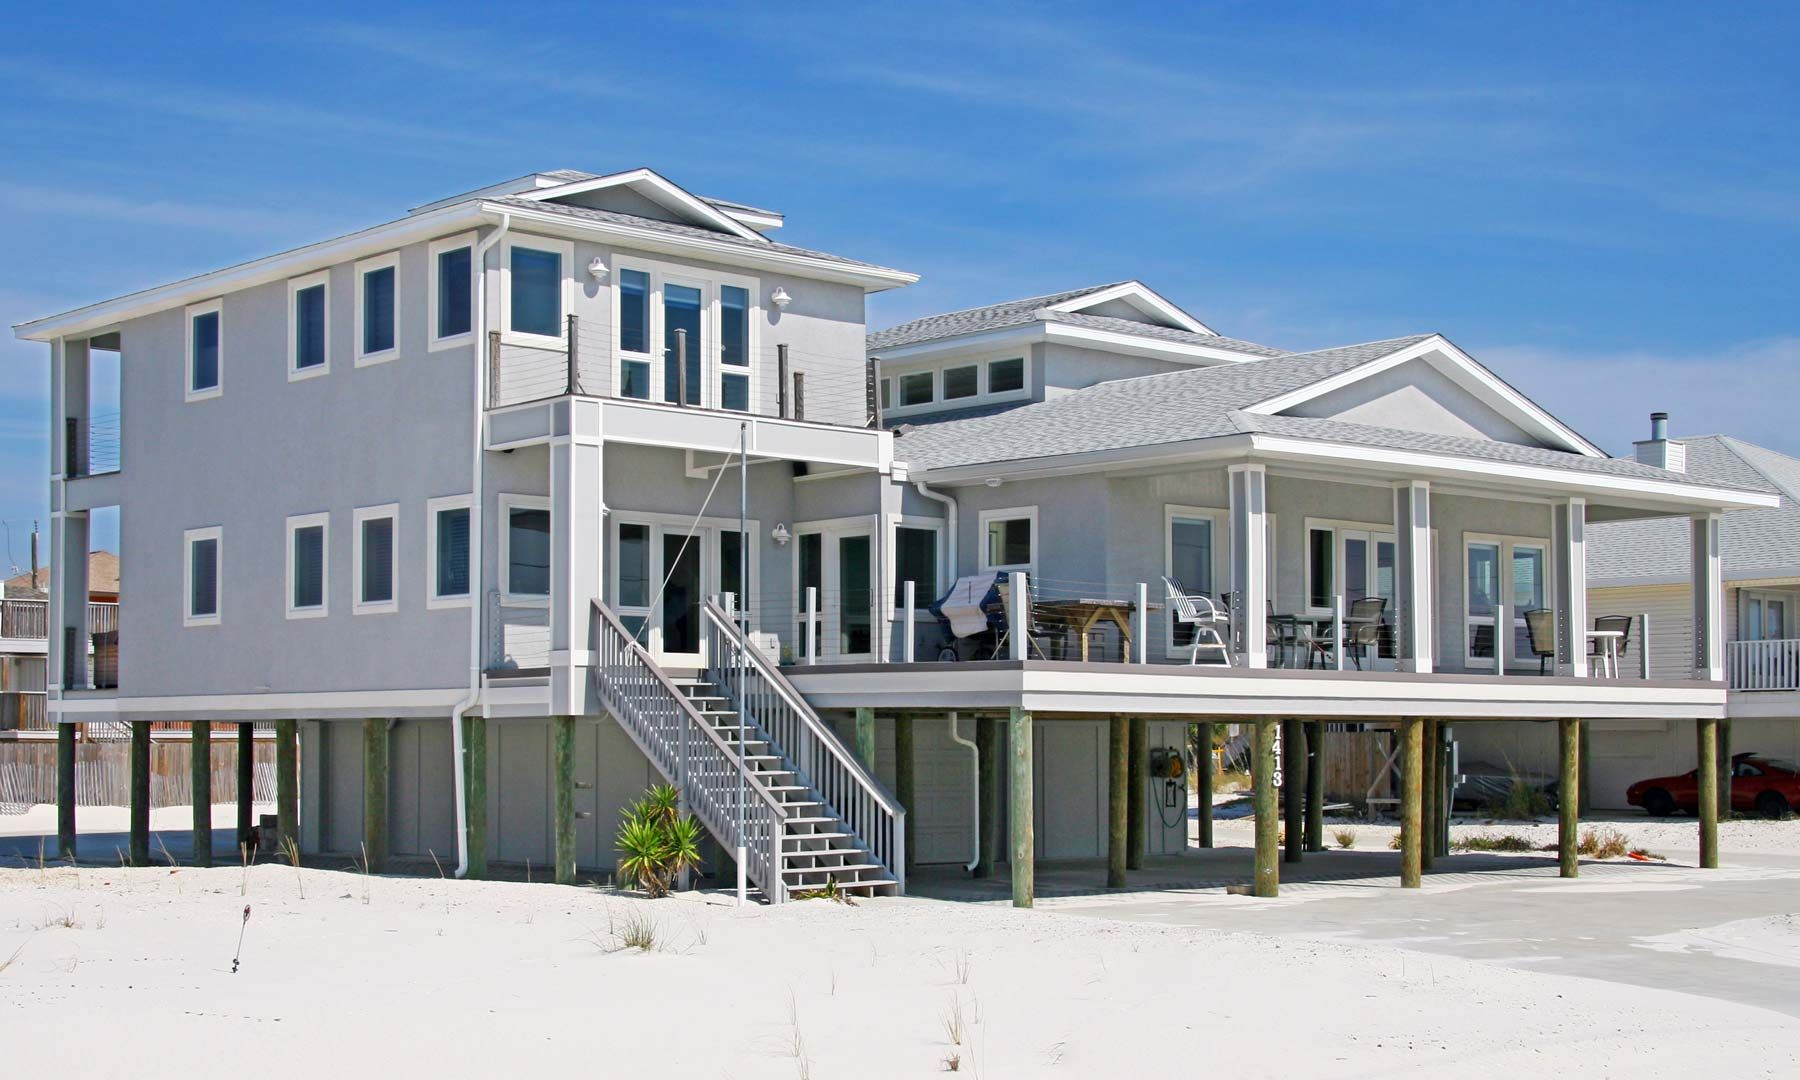 Sloan residence on Pensacola Beach by Acorn Fine Homes